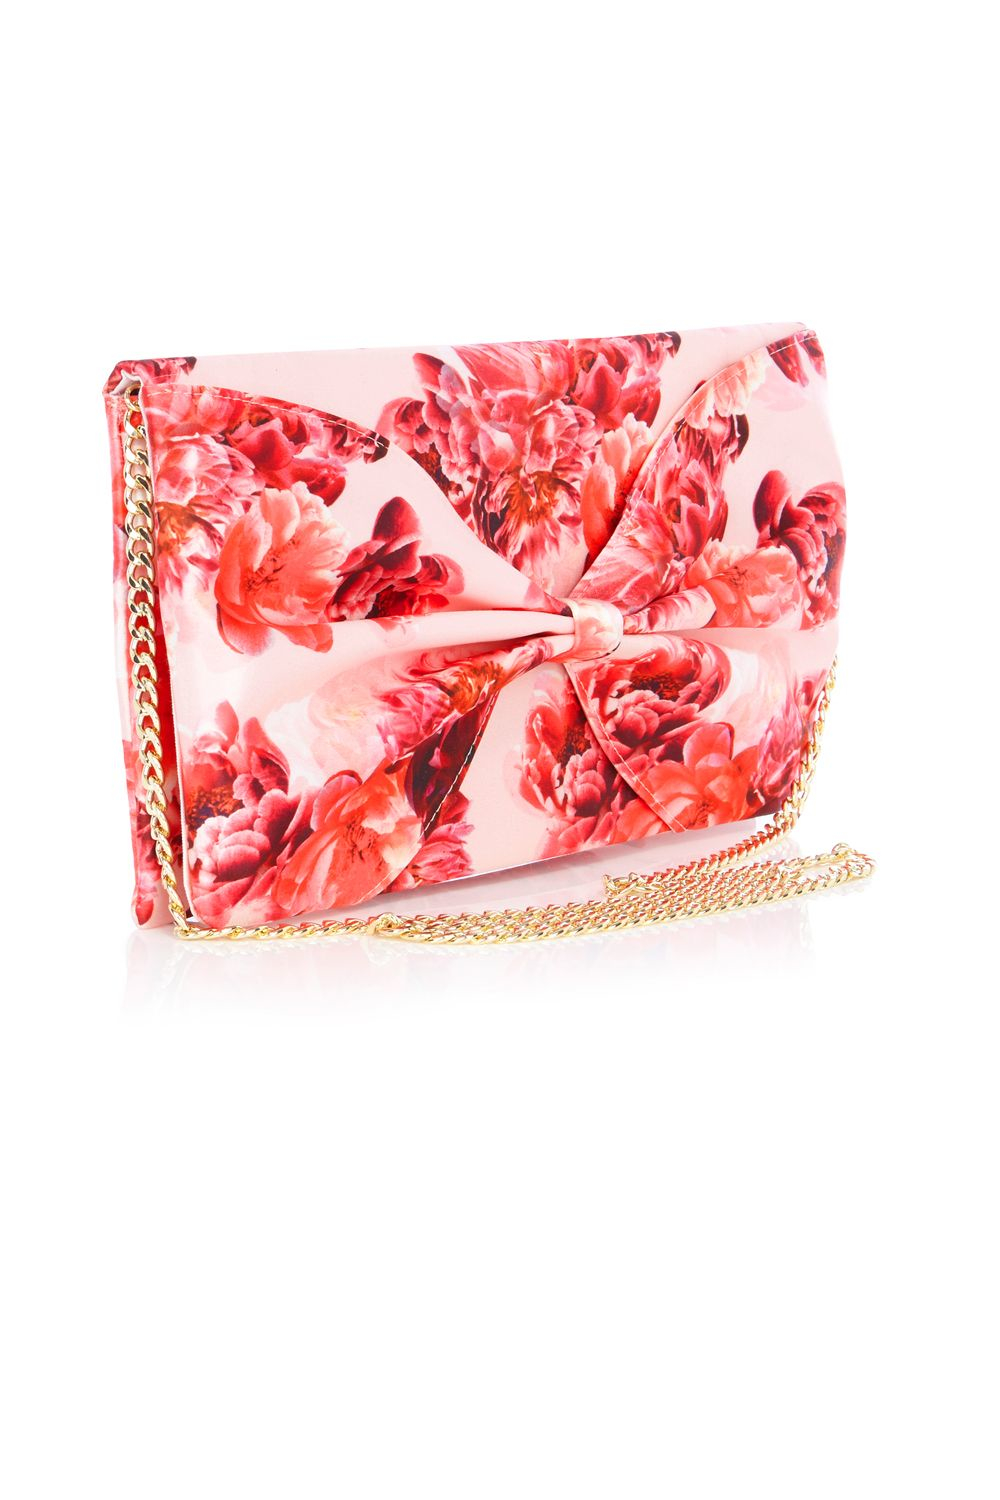 Coast Printed Bow Clutch Bag in Red